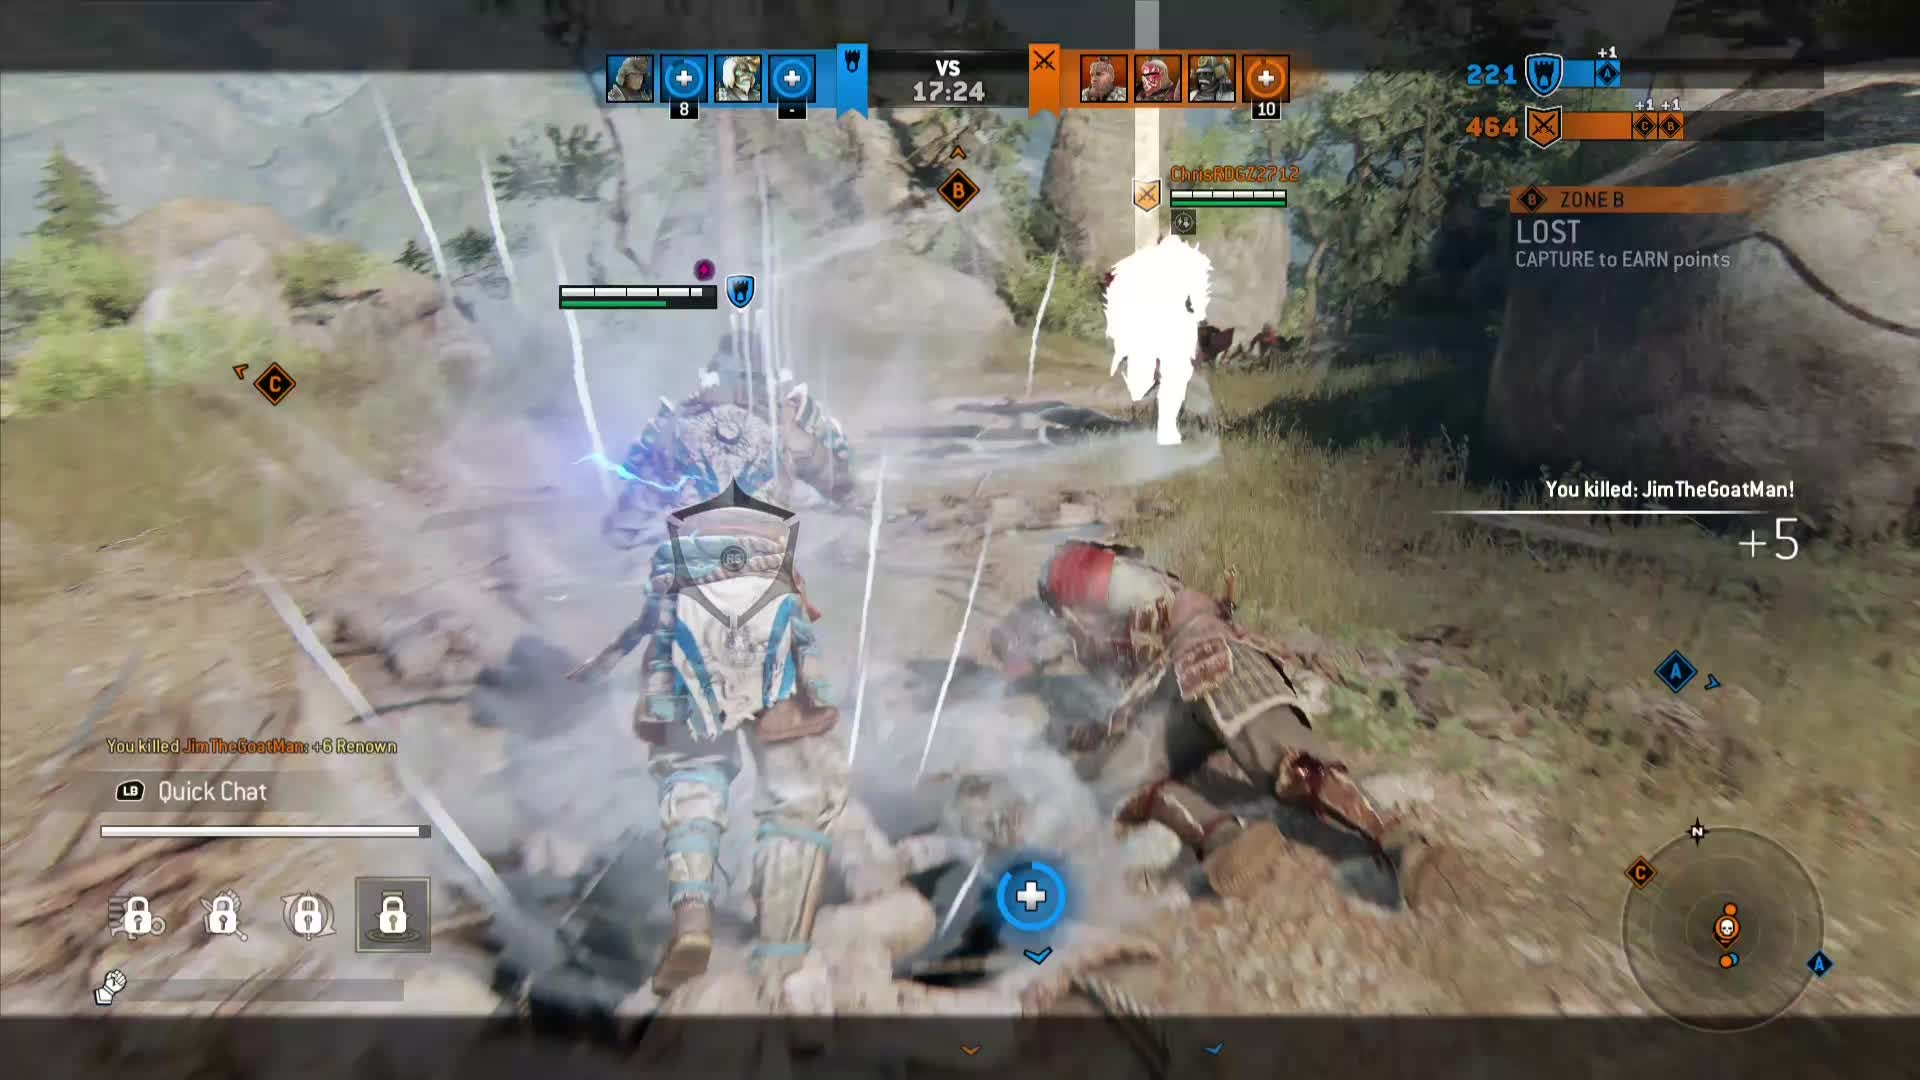 For Honor: General - Making people Rage quit gives me life 😂 video cover image 2